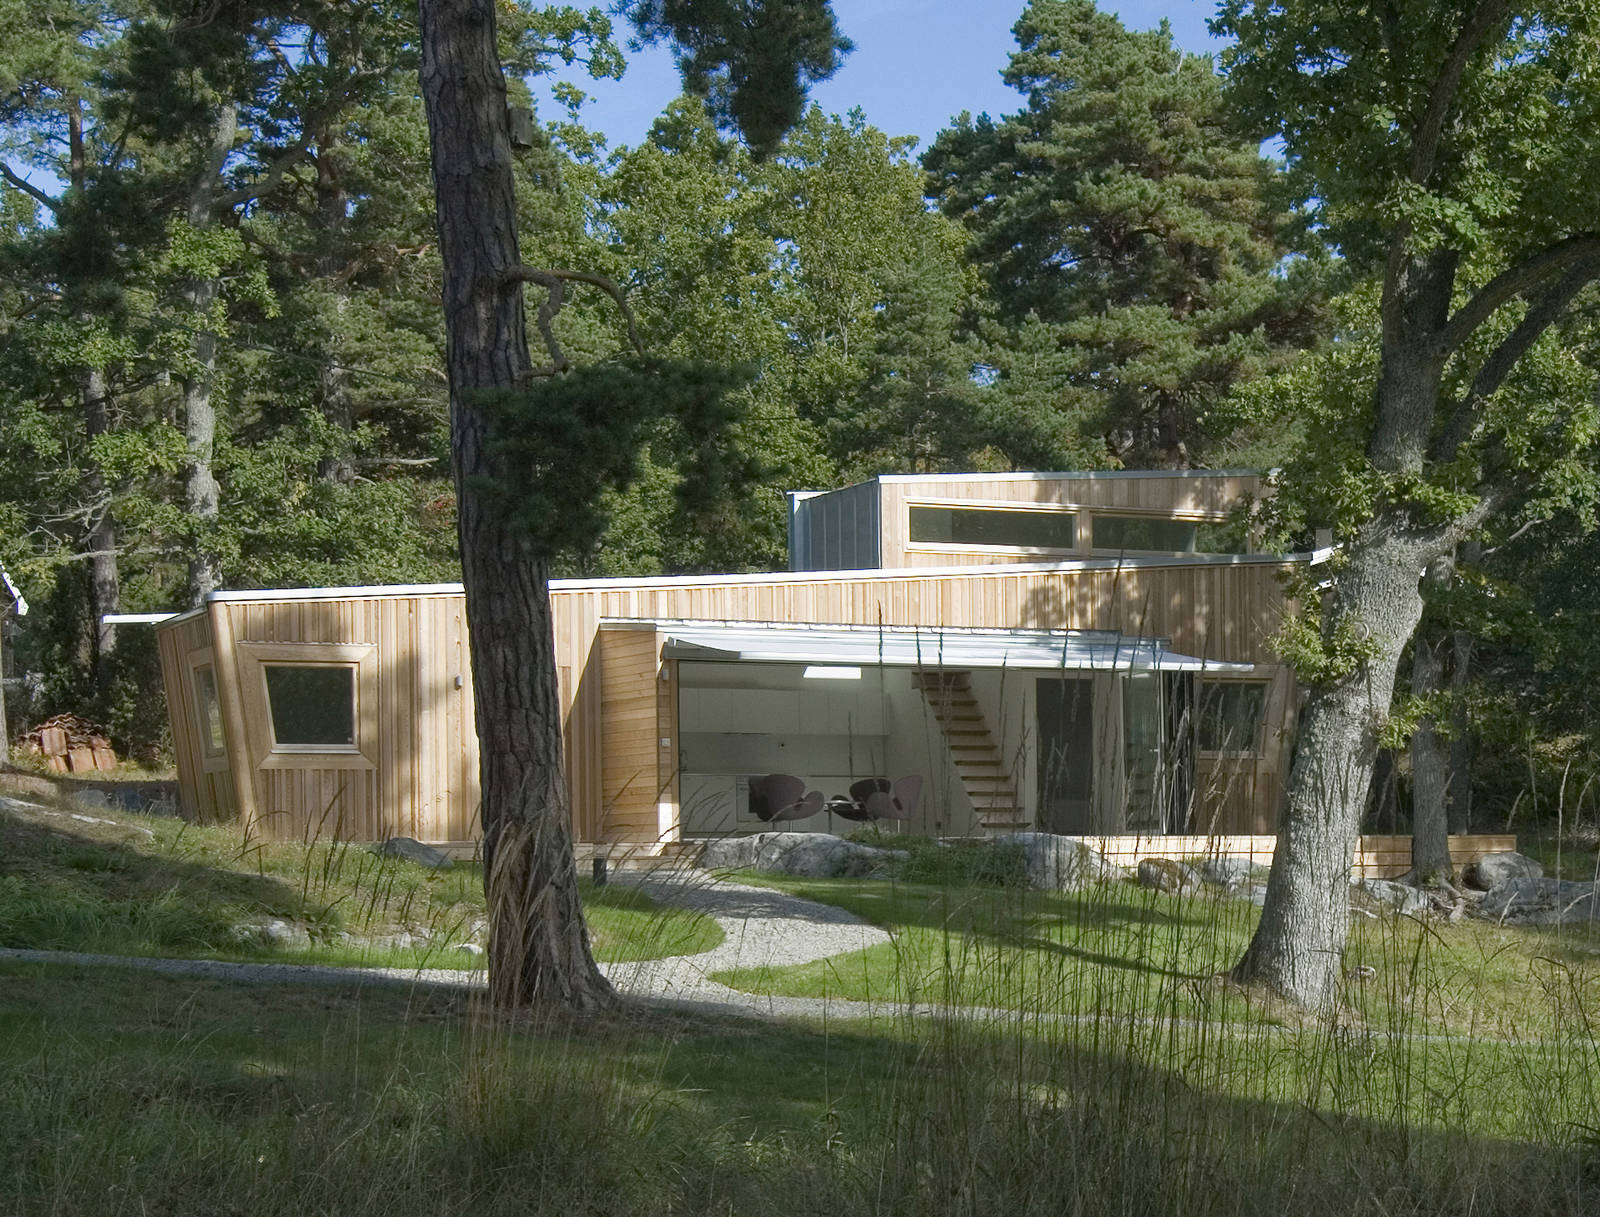 Sweden Houses Design A Low Impact Modern Cabin In Sweden Schlyter Gezelius Small